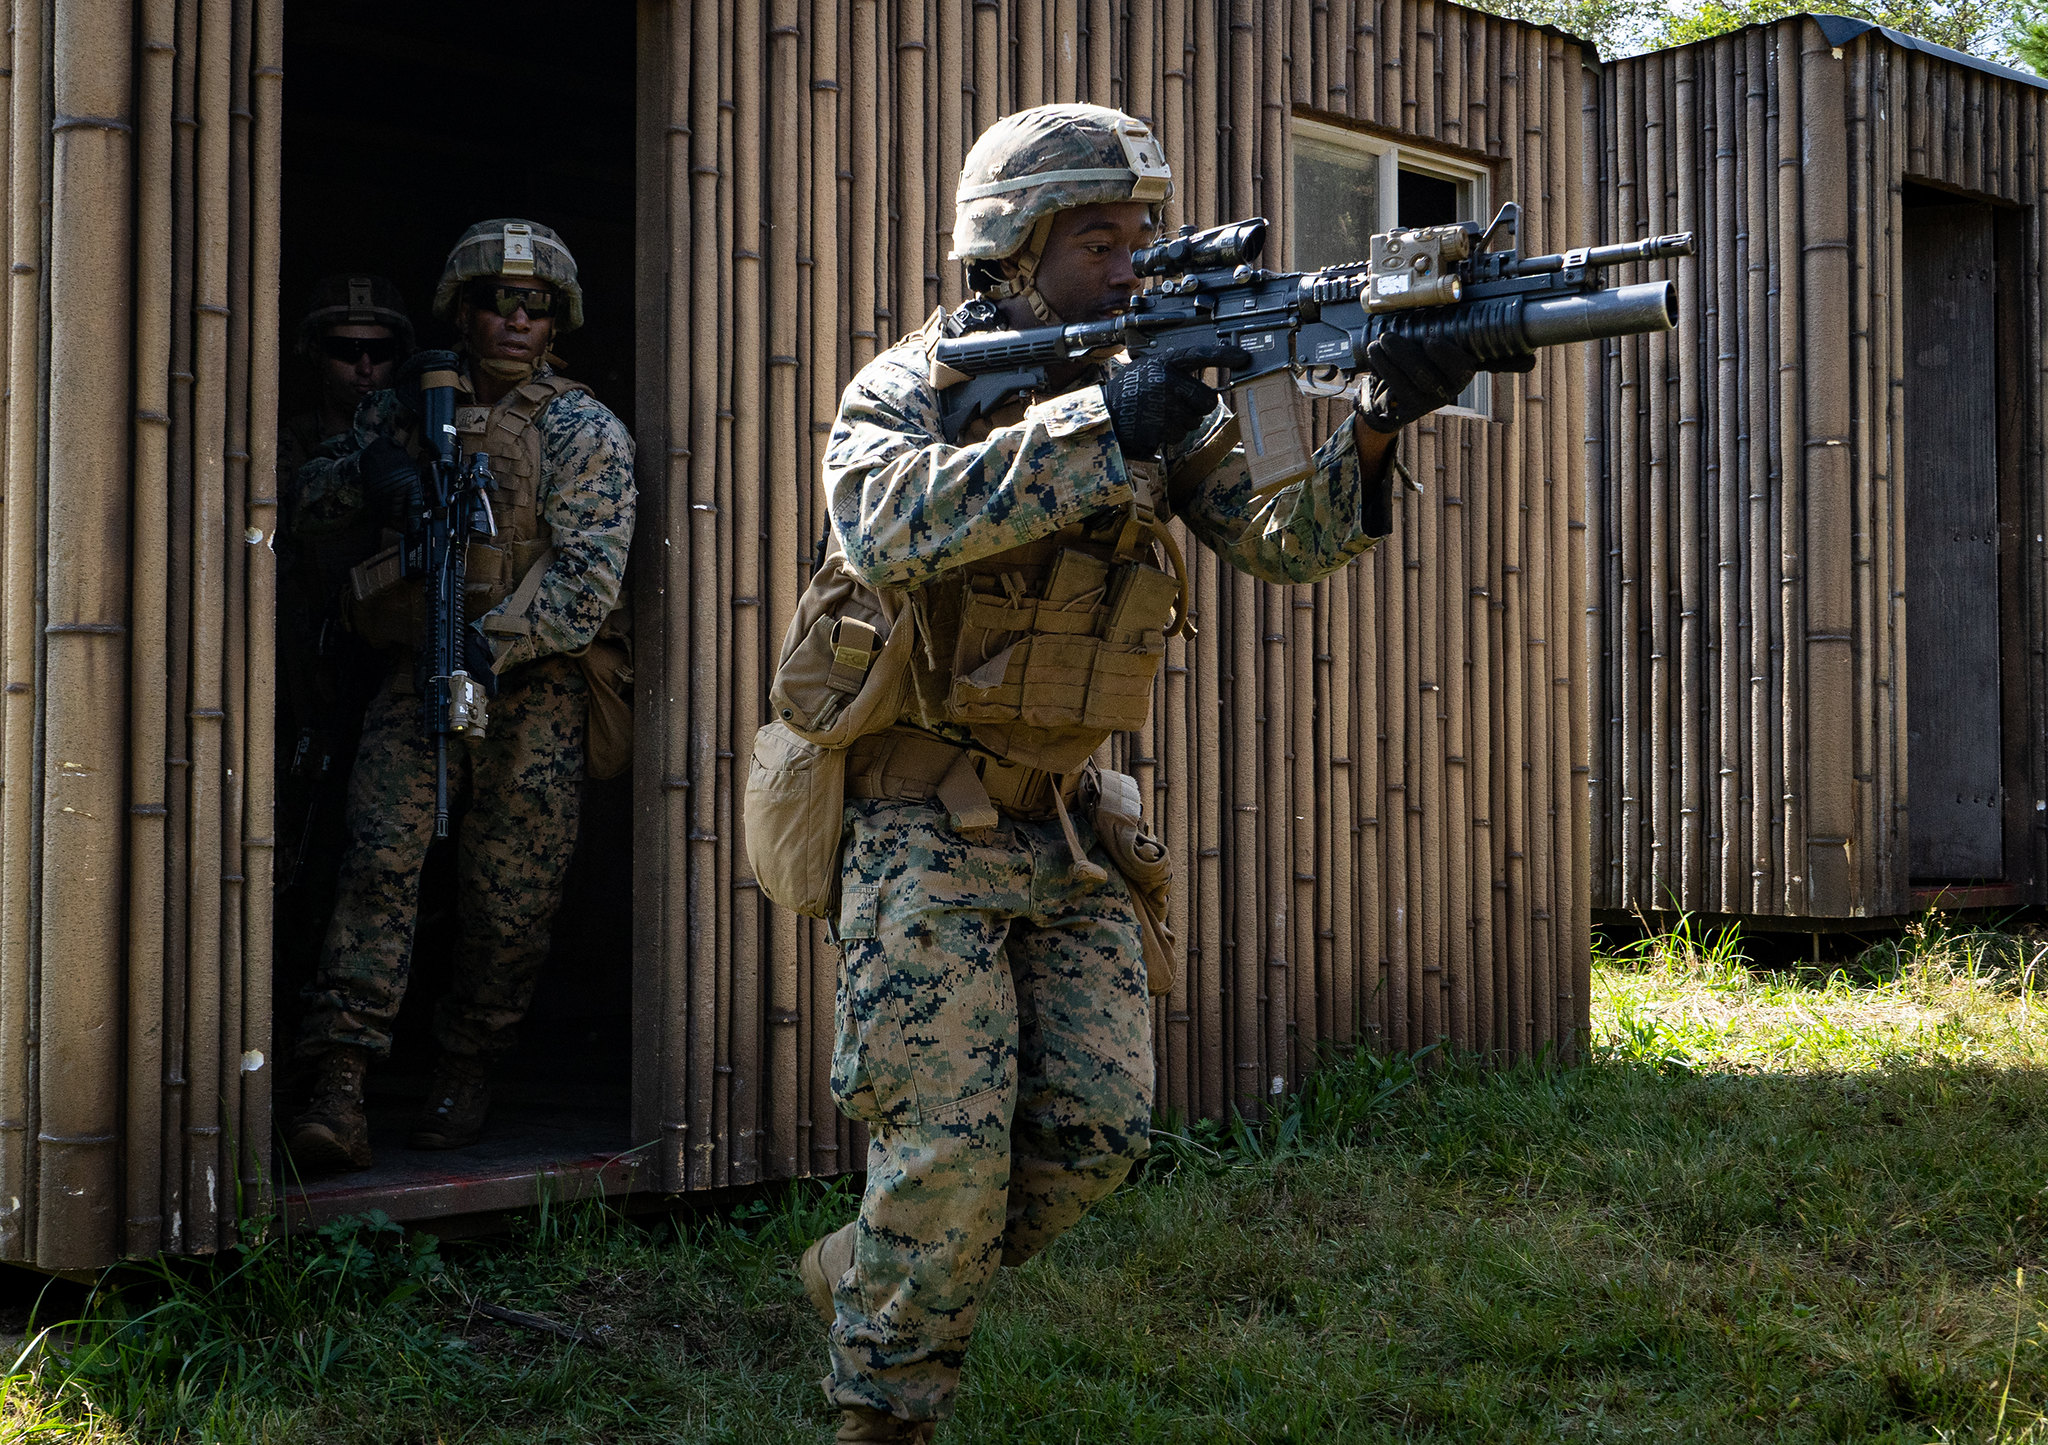 Marine Corps Cpl. Fred Nyema leads his team to the next building during military operations in urban terrain training as part of exercise Fuji Viper 20.1 on Camp Fuji, Japan, Oct. 7, 2019. (Cpl. Timothy Hernandez/Marine Corps)